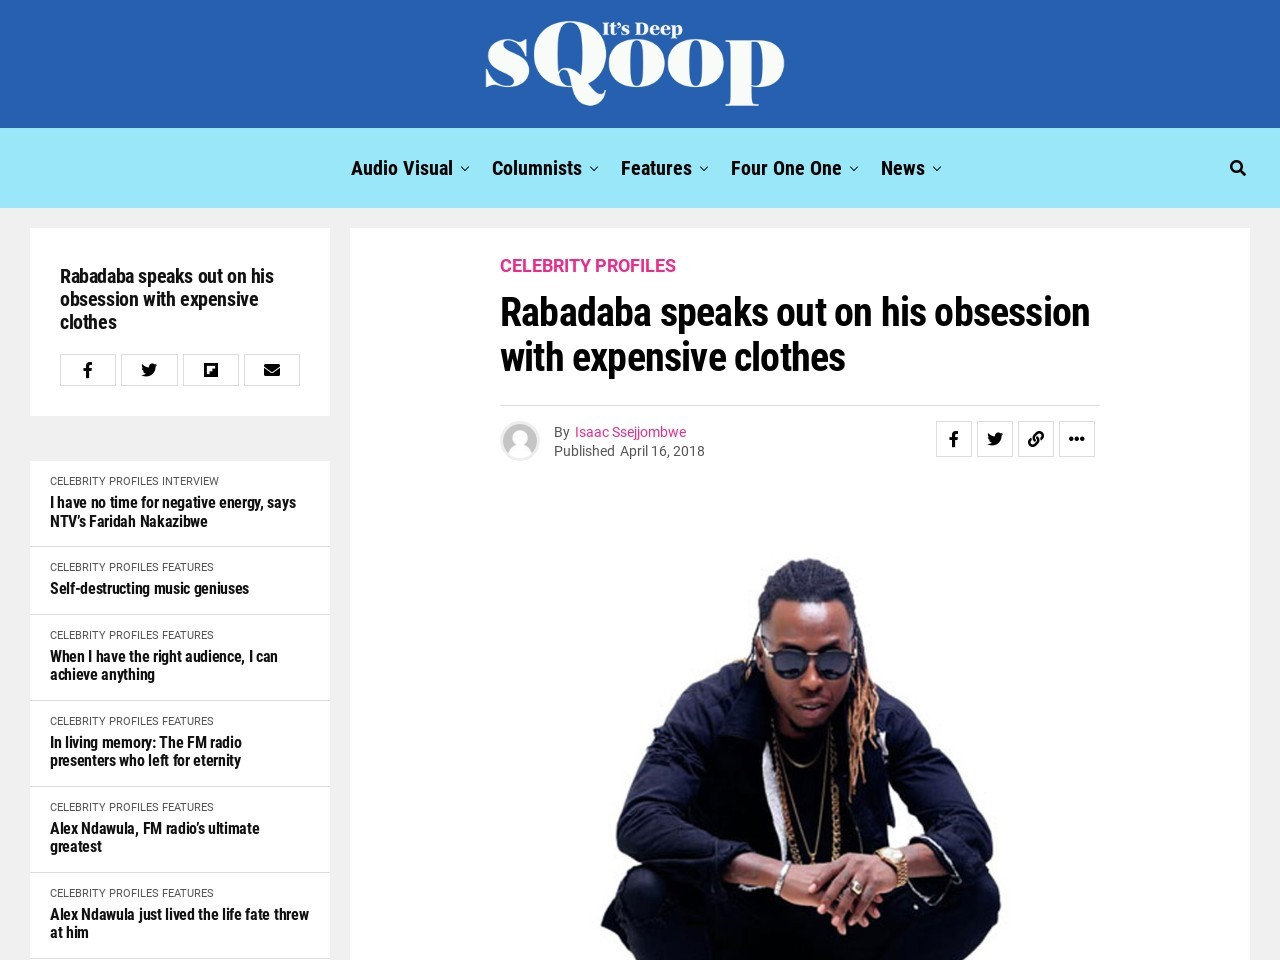 Rabadaba speaks out on his obsession with expensive clothes